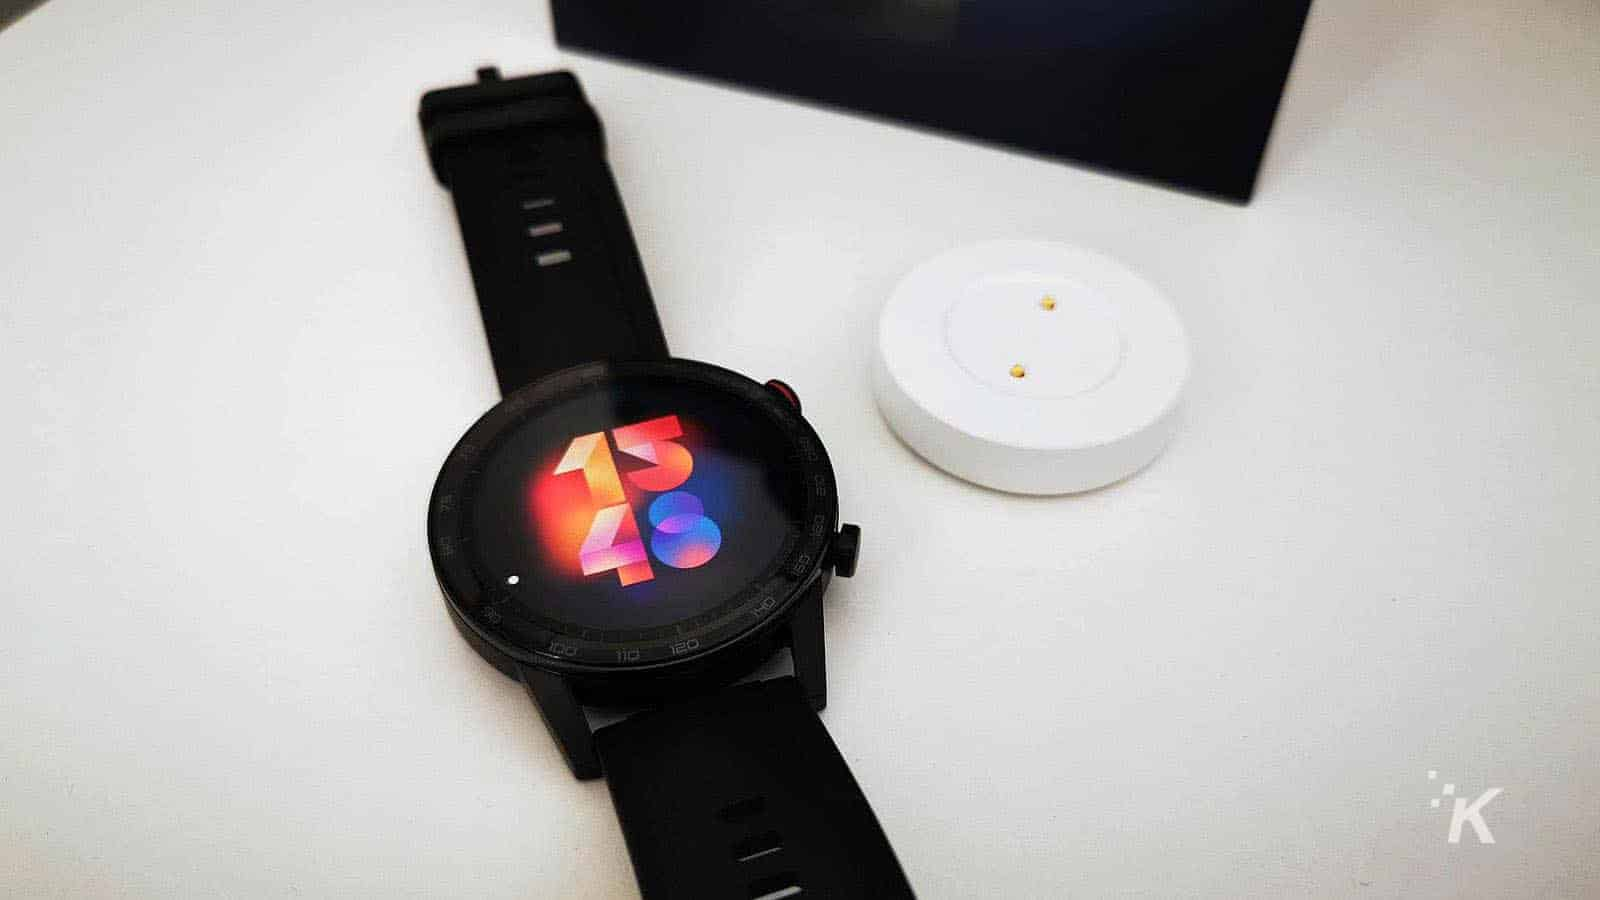 honor magic watch on table with charger